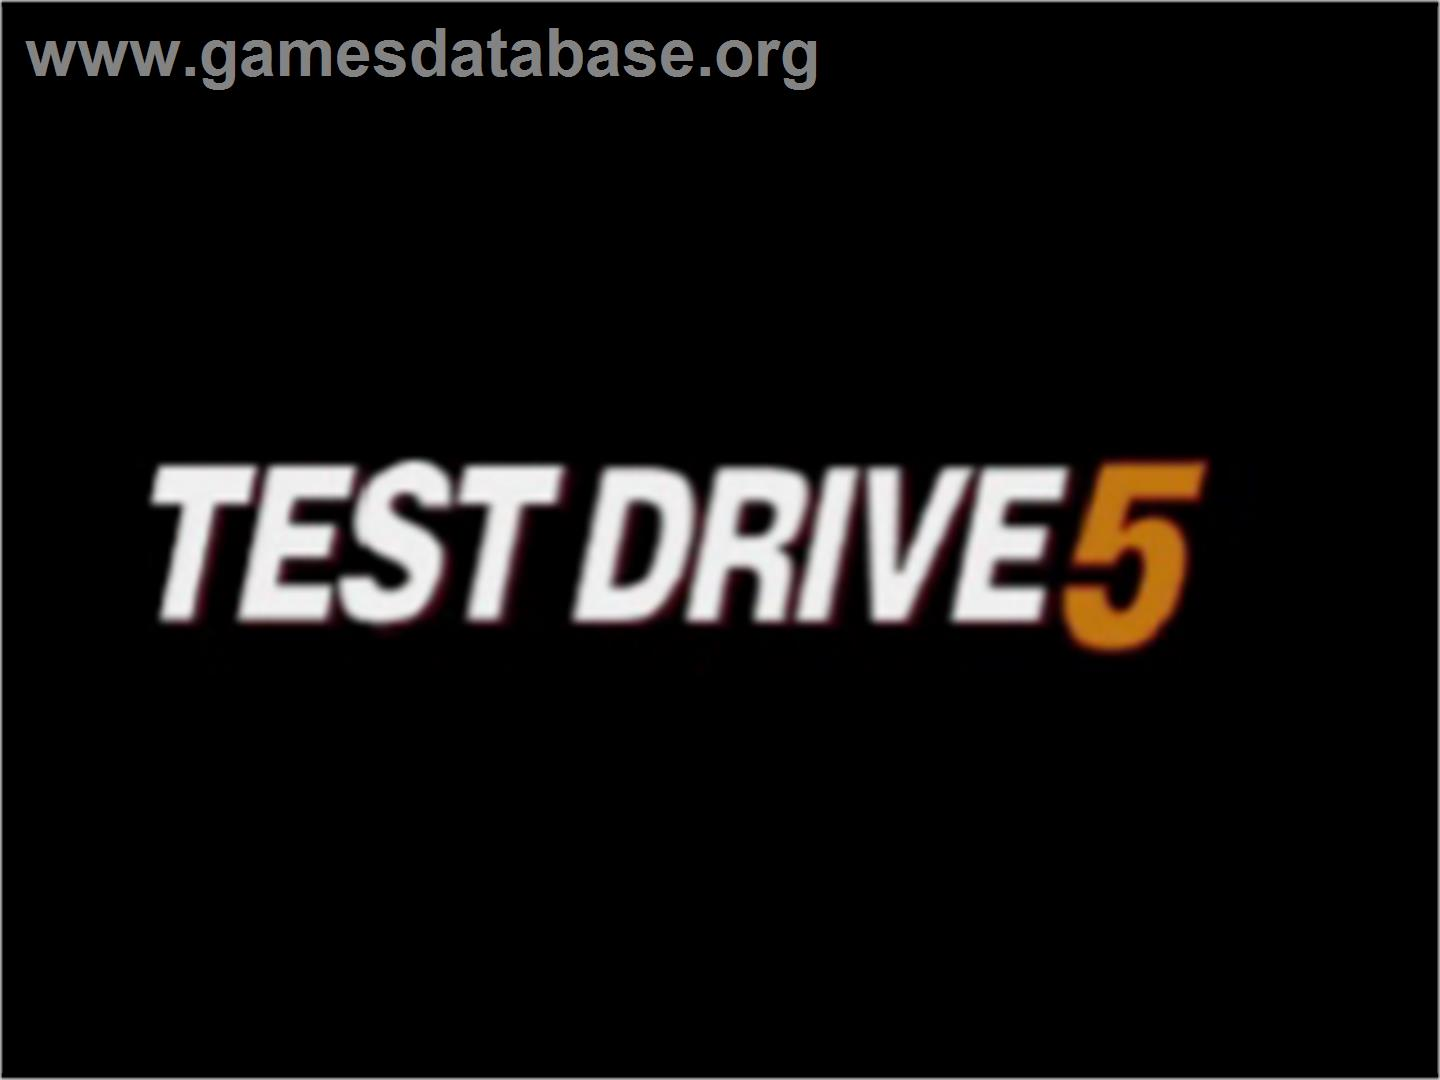 Test Drive 5 - Sony Playstation - Artwork - Title Screen